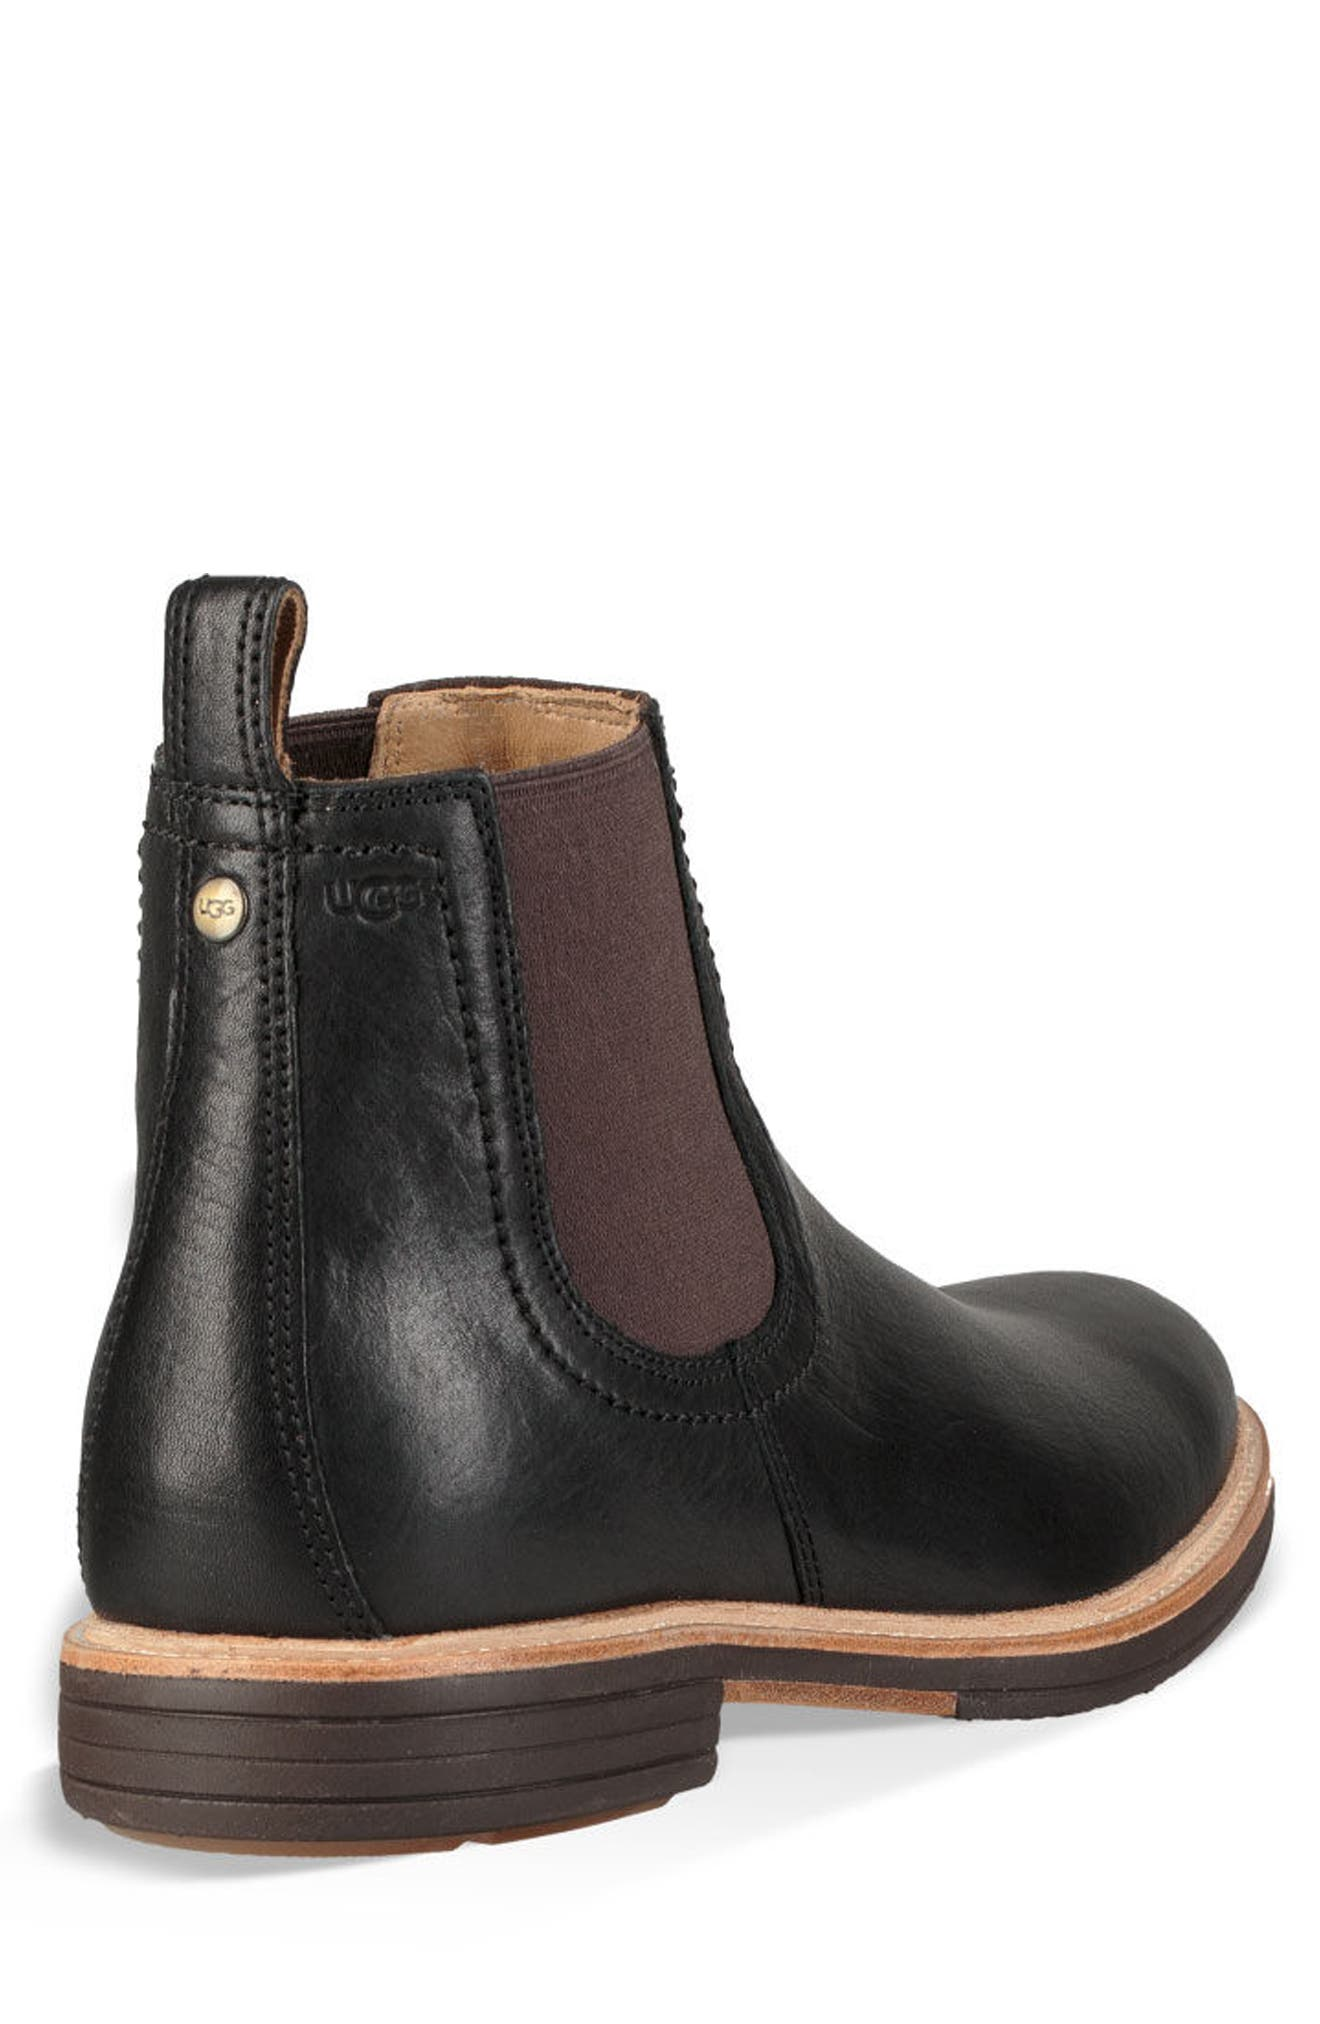 UGG<SUP>®</SUP>, Baldvin Chelsea Boot, Alternate thumbnail 2, color, BLACK LEATHER/SUEDE